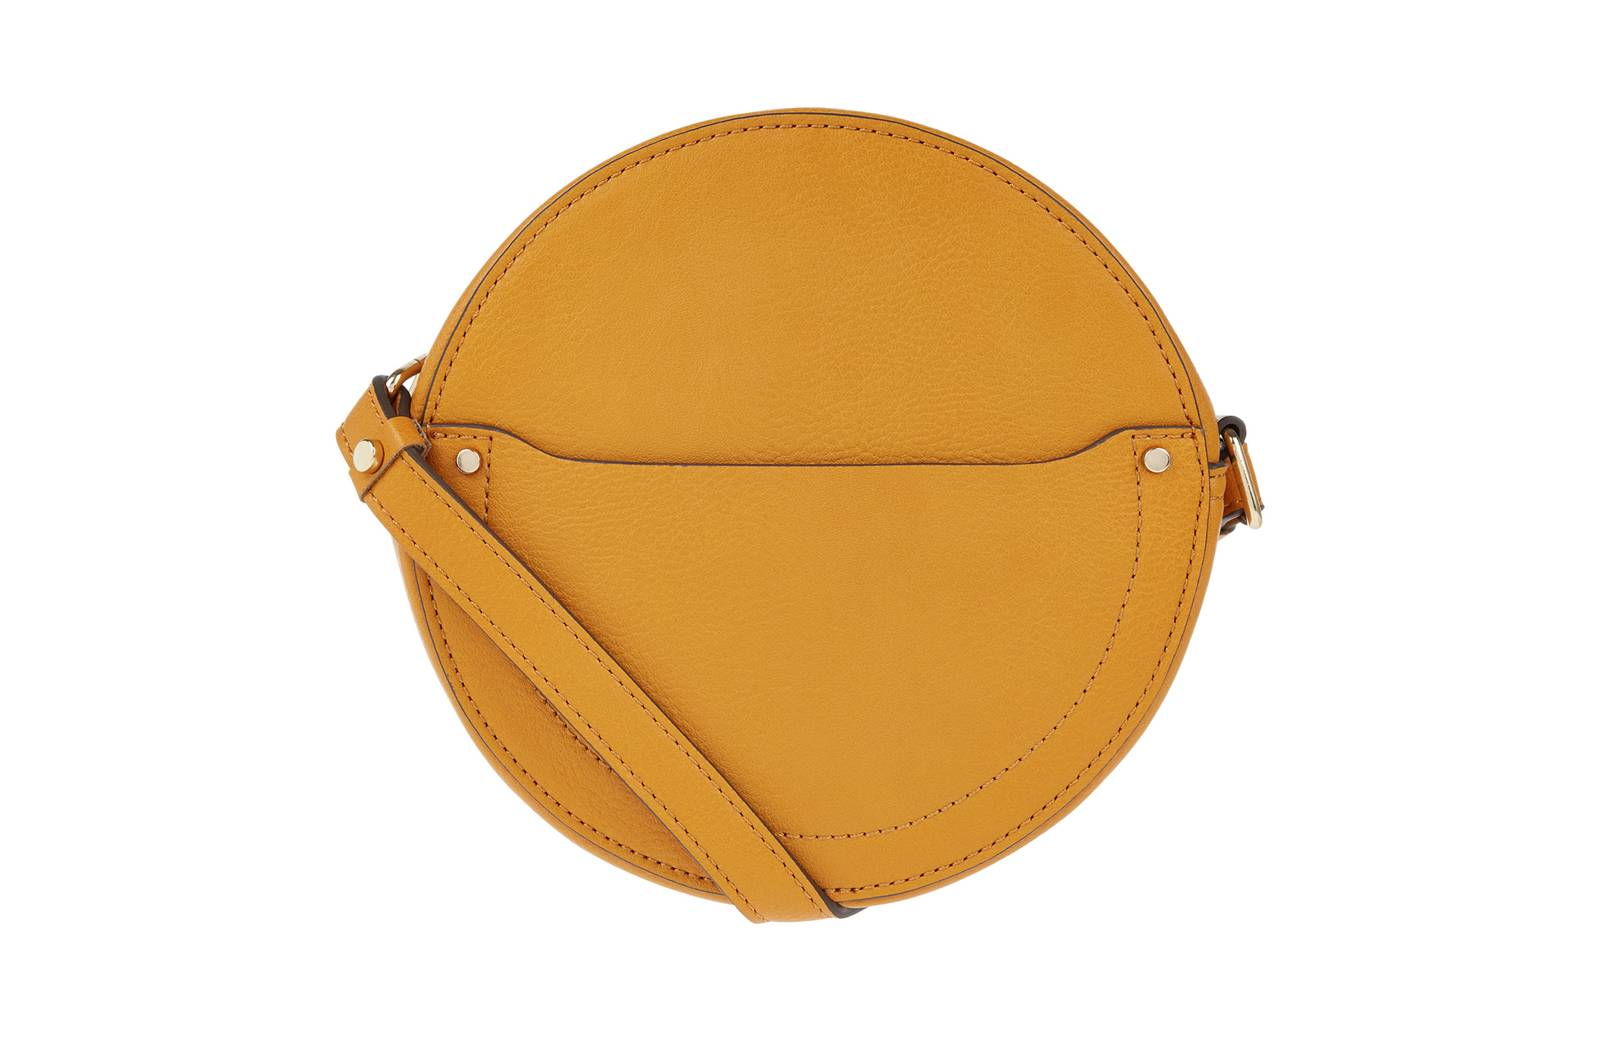 7e0fa51e9e The Best Round Bags On The High Street Now